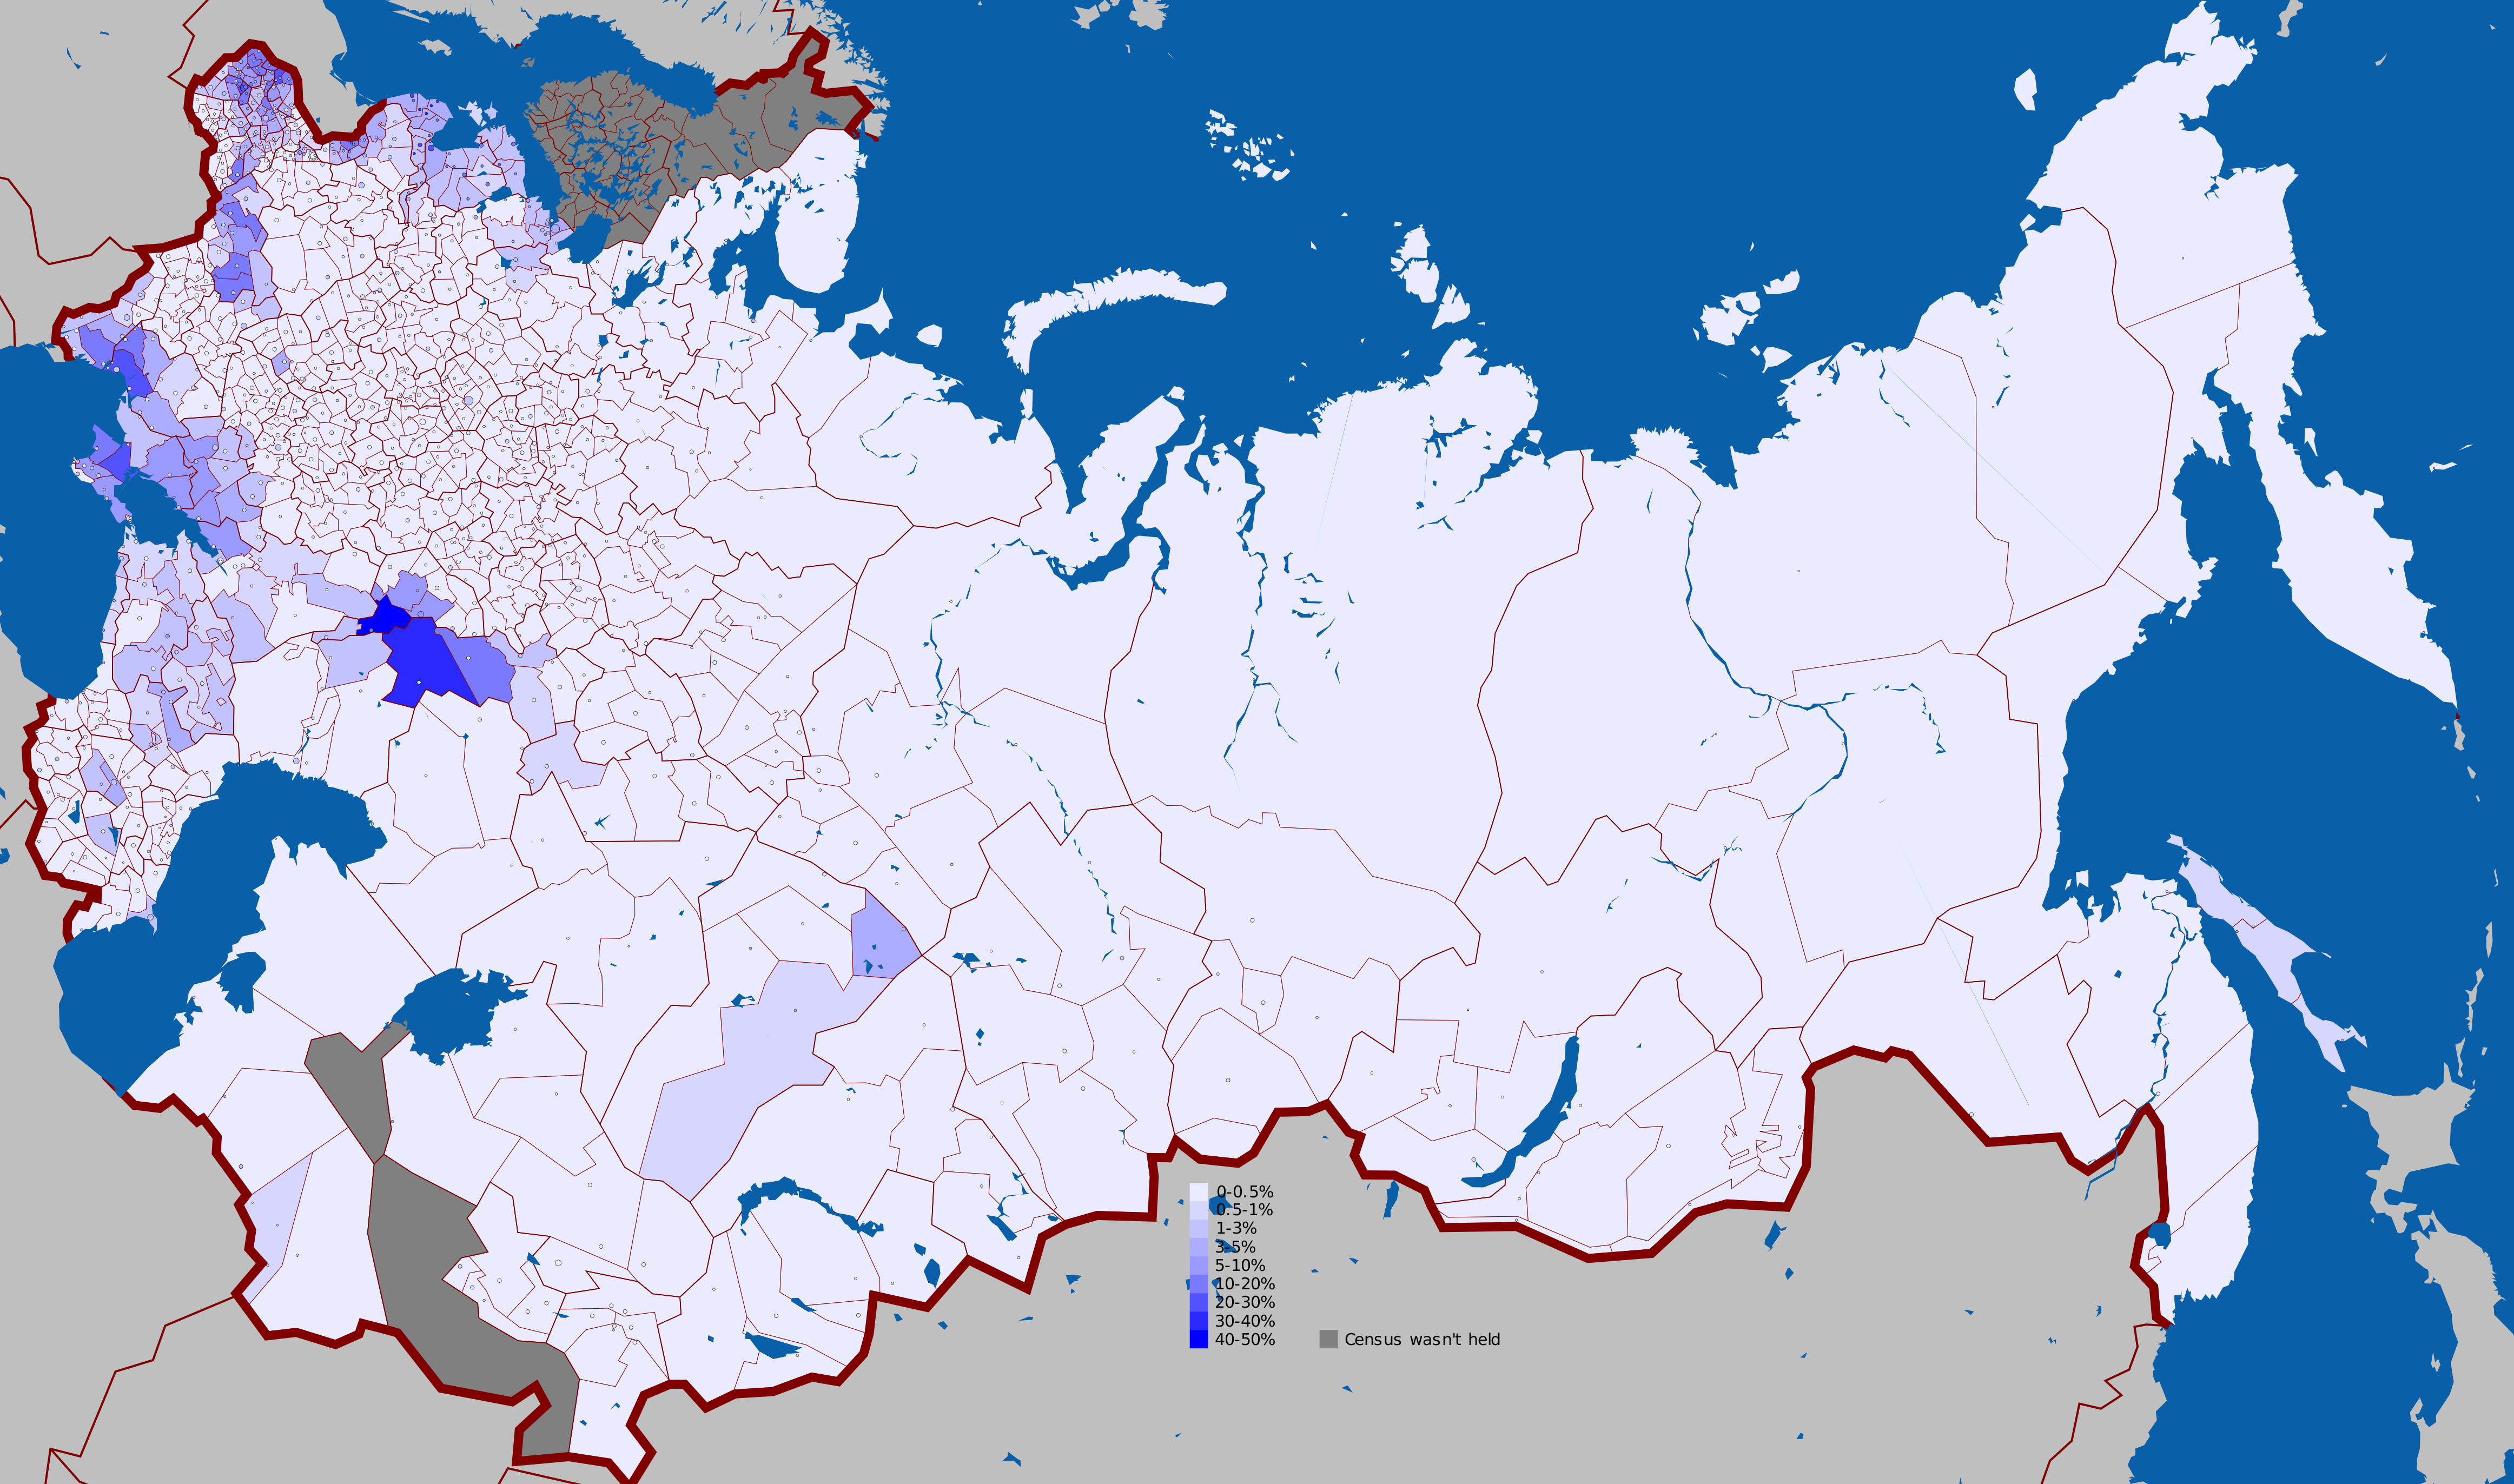 German language in the Russian Empire 1897